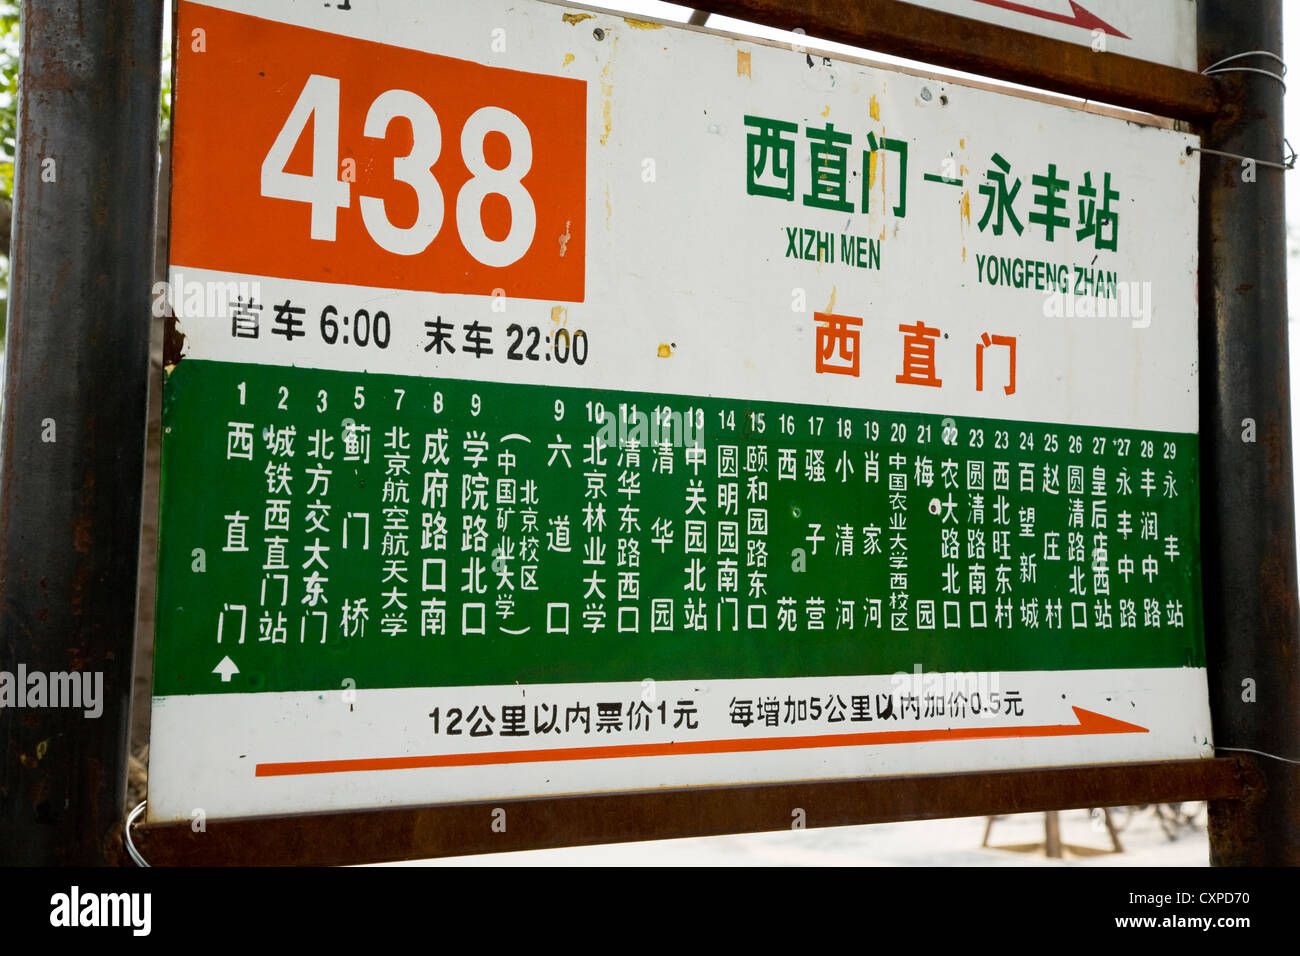 Timetable Time Table Display Sign Information Board In